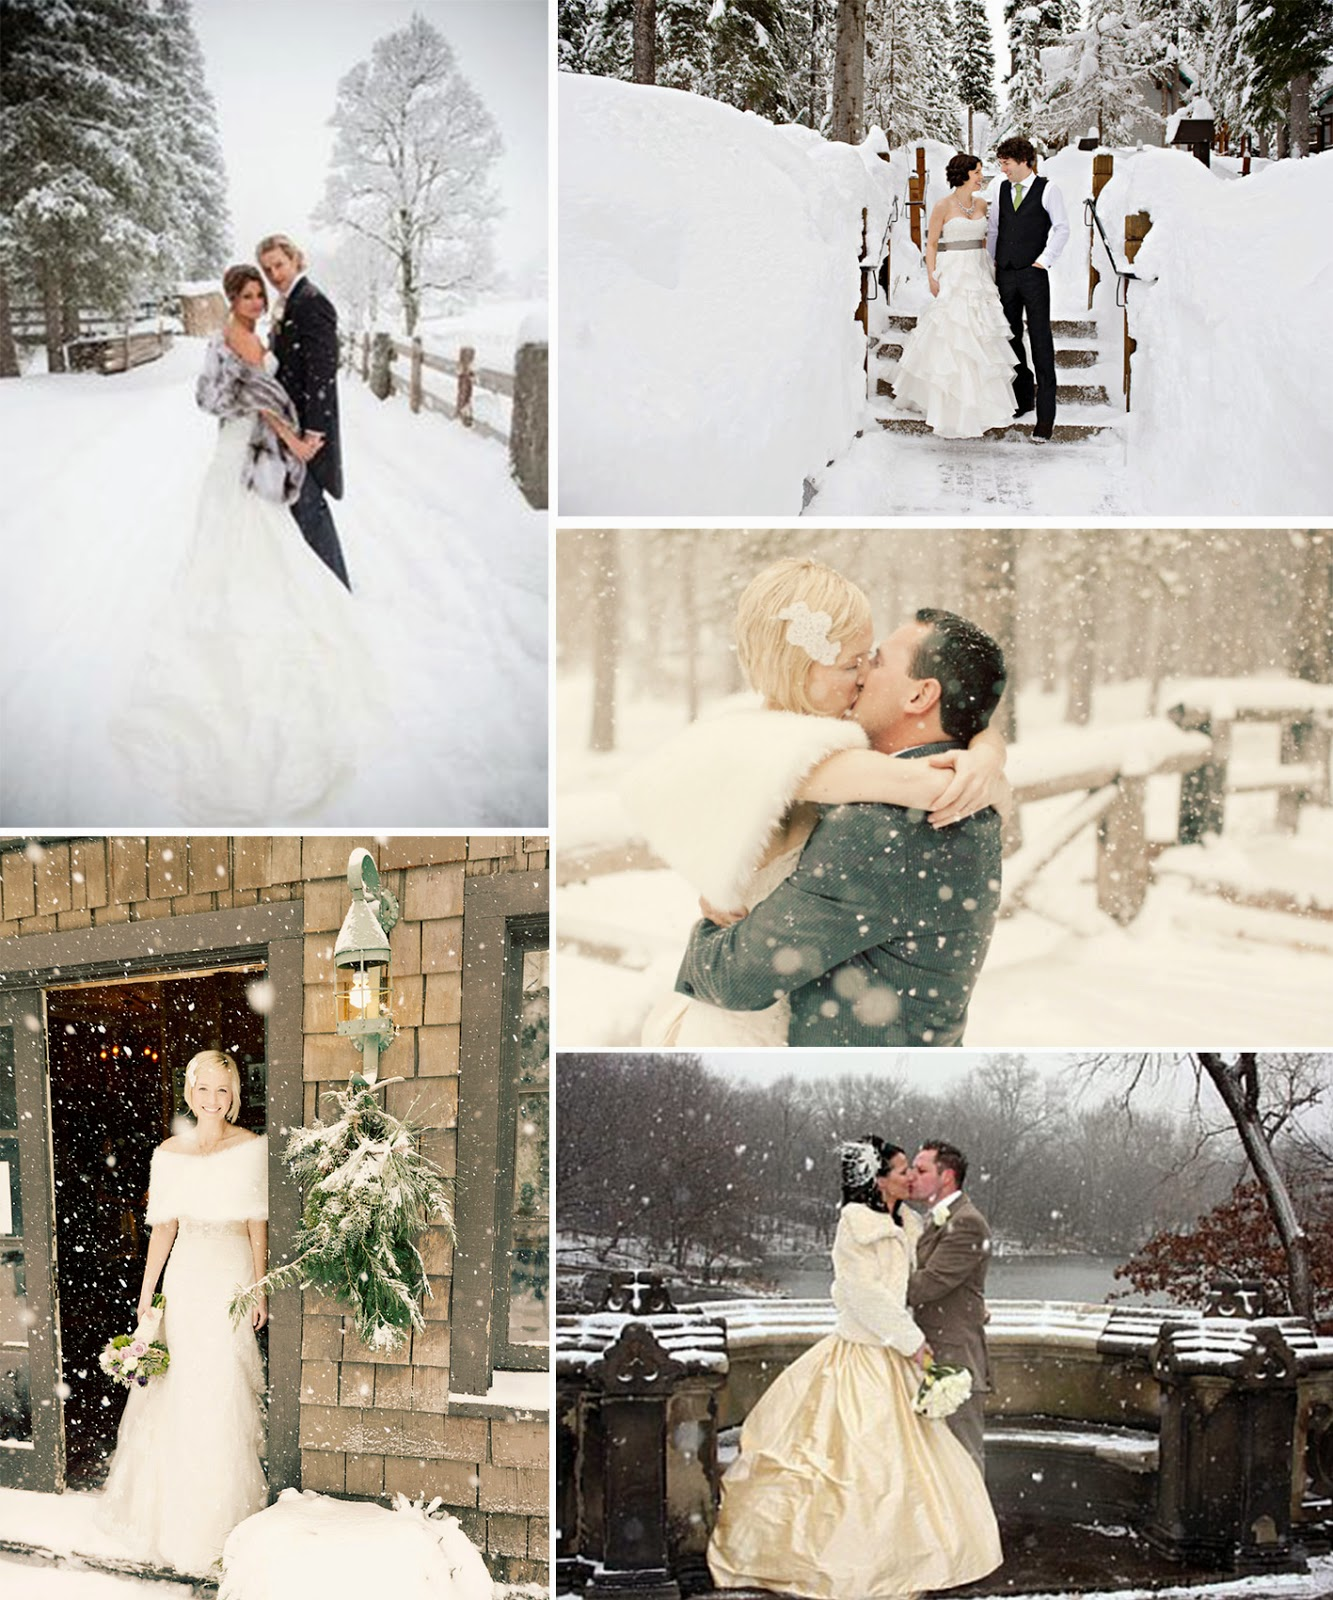 prom dress: Inspiration for winter theme wedding party